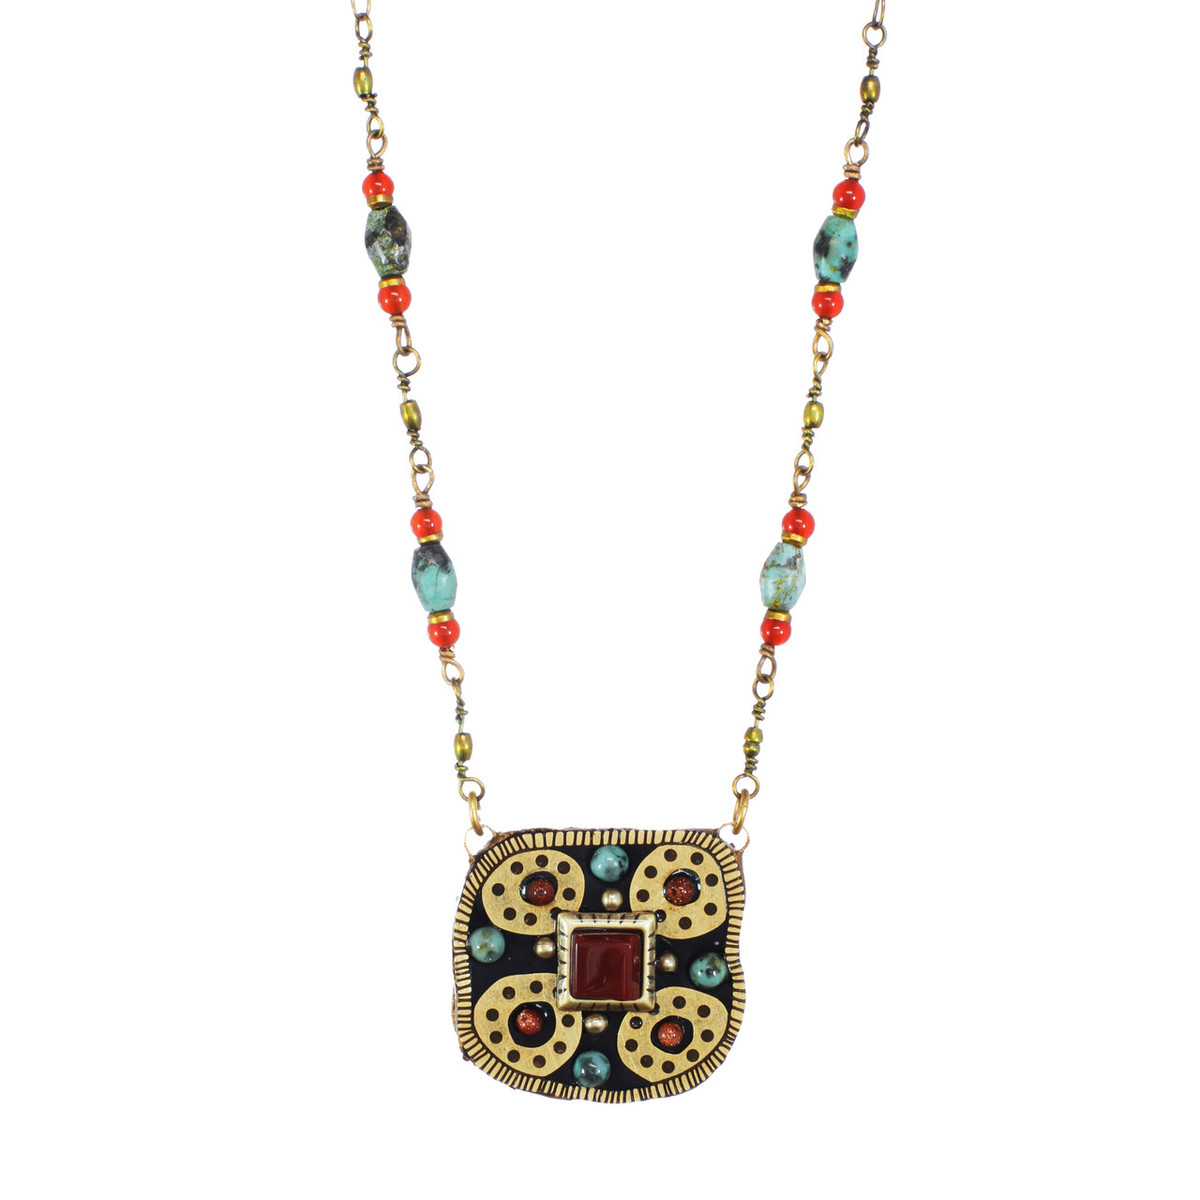 Michal Golan Jewelry Medium Square Necklace